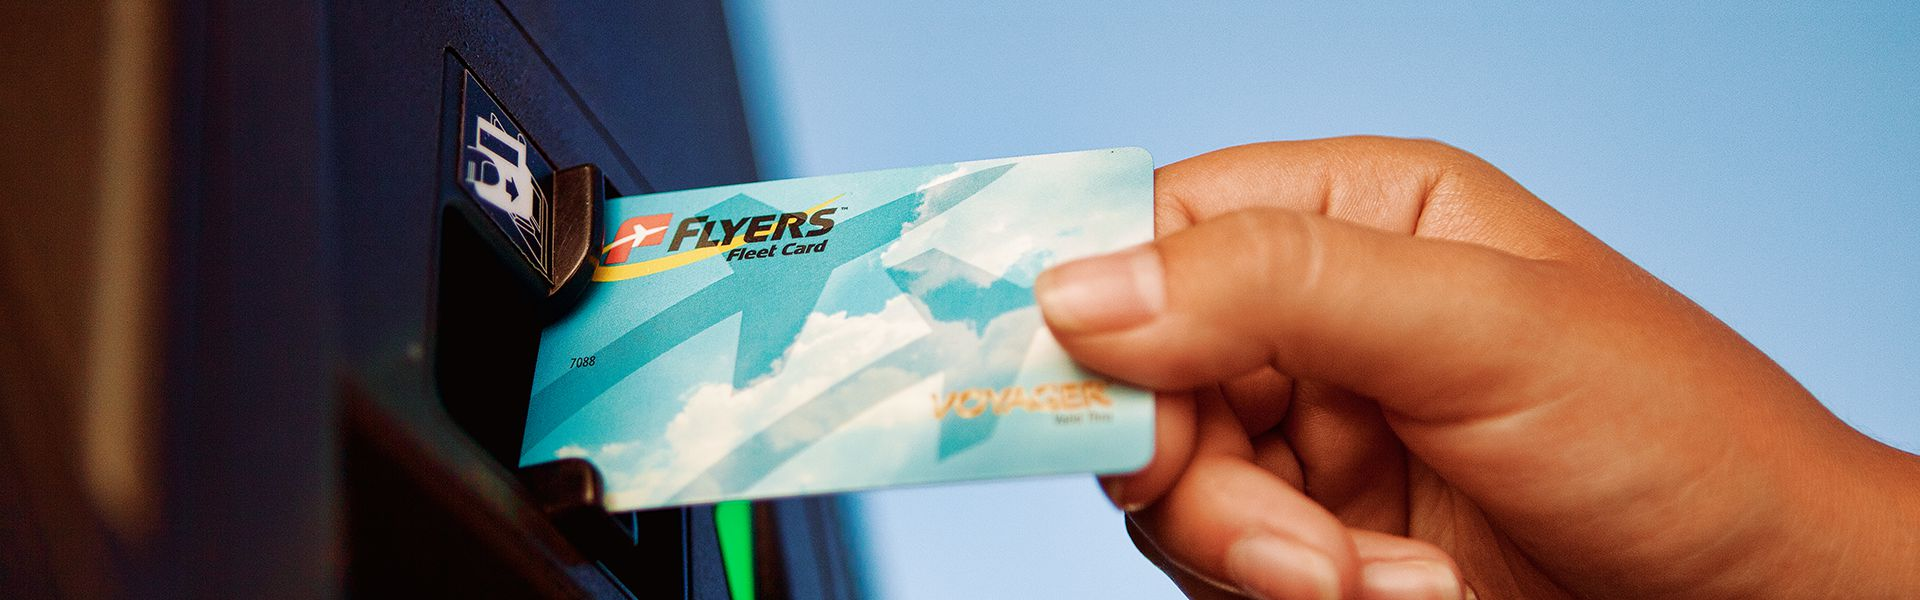 Commercial Fueling - Fleet Fuel Cards